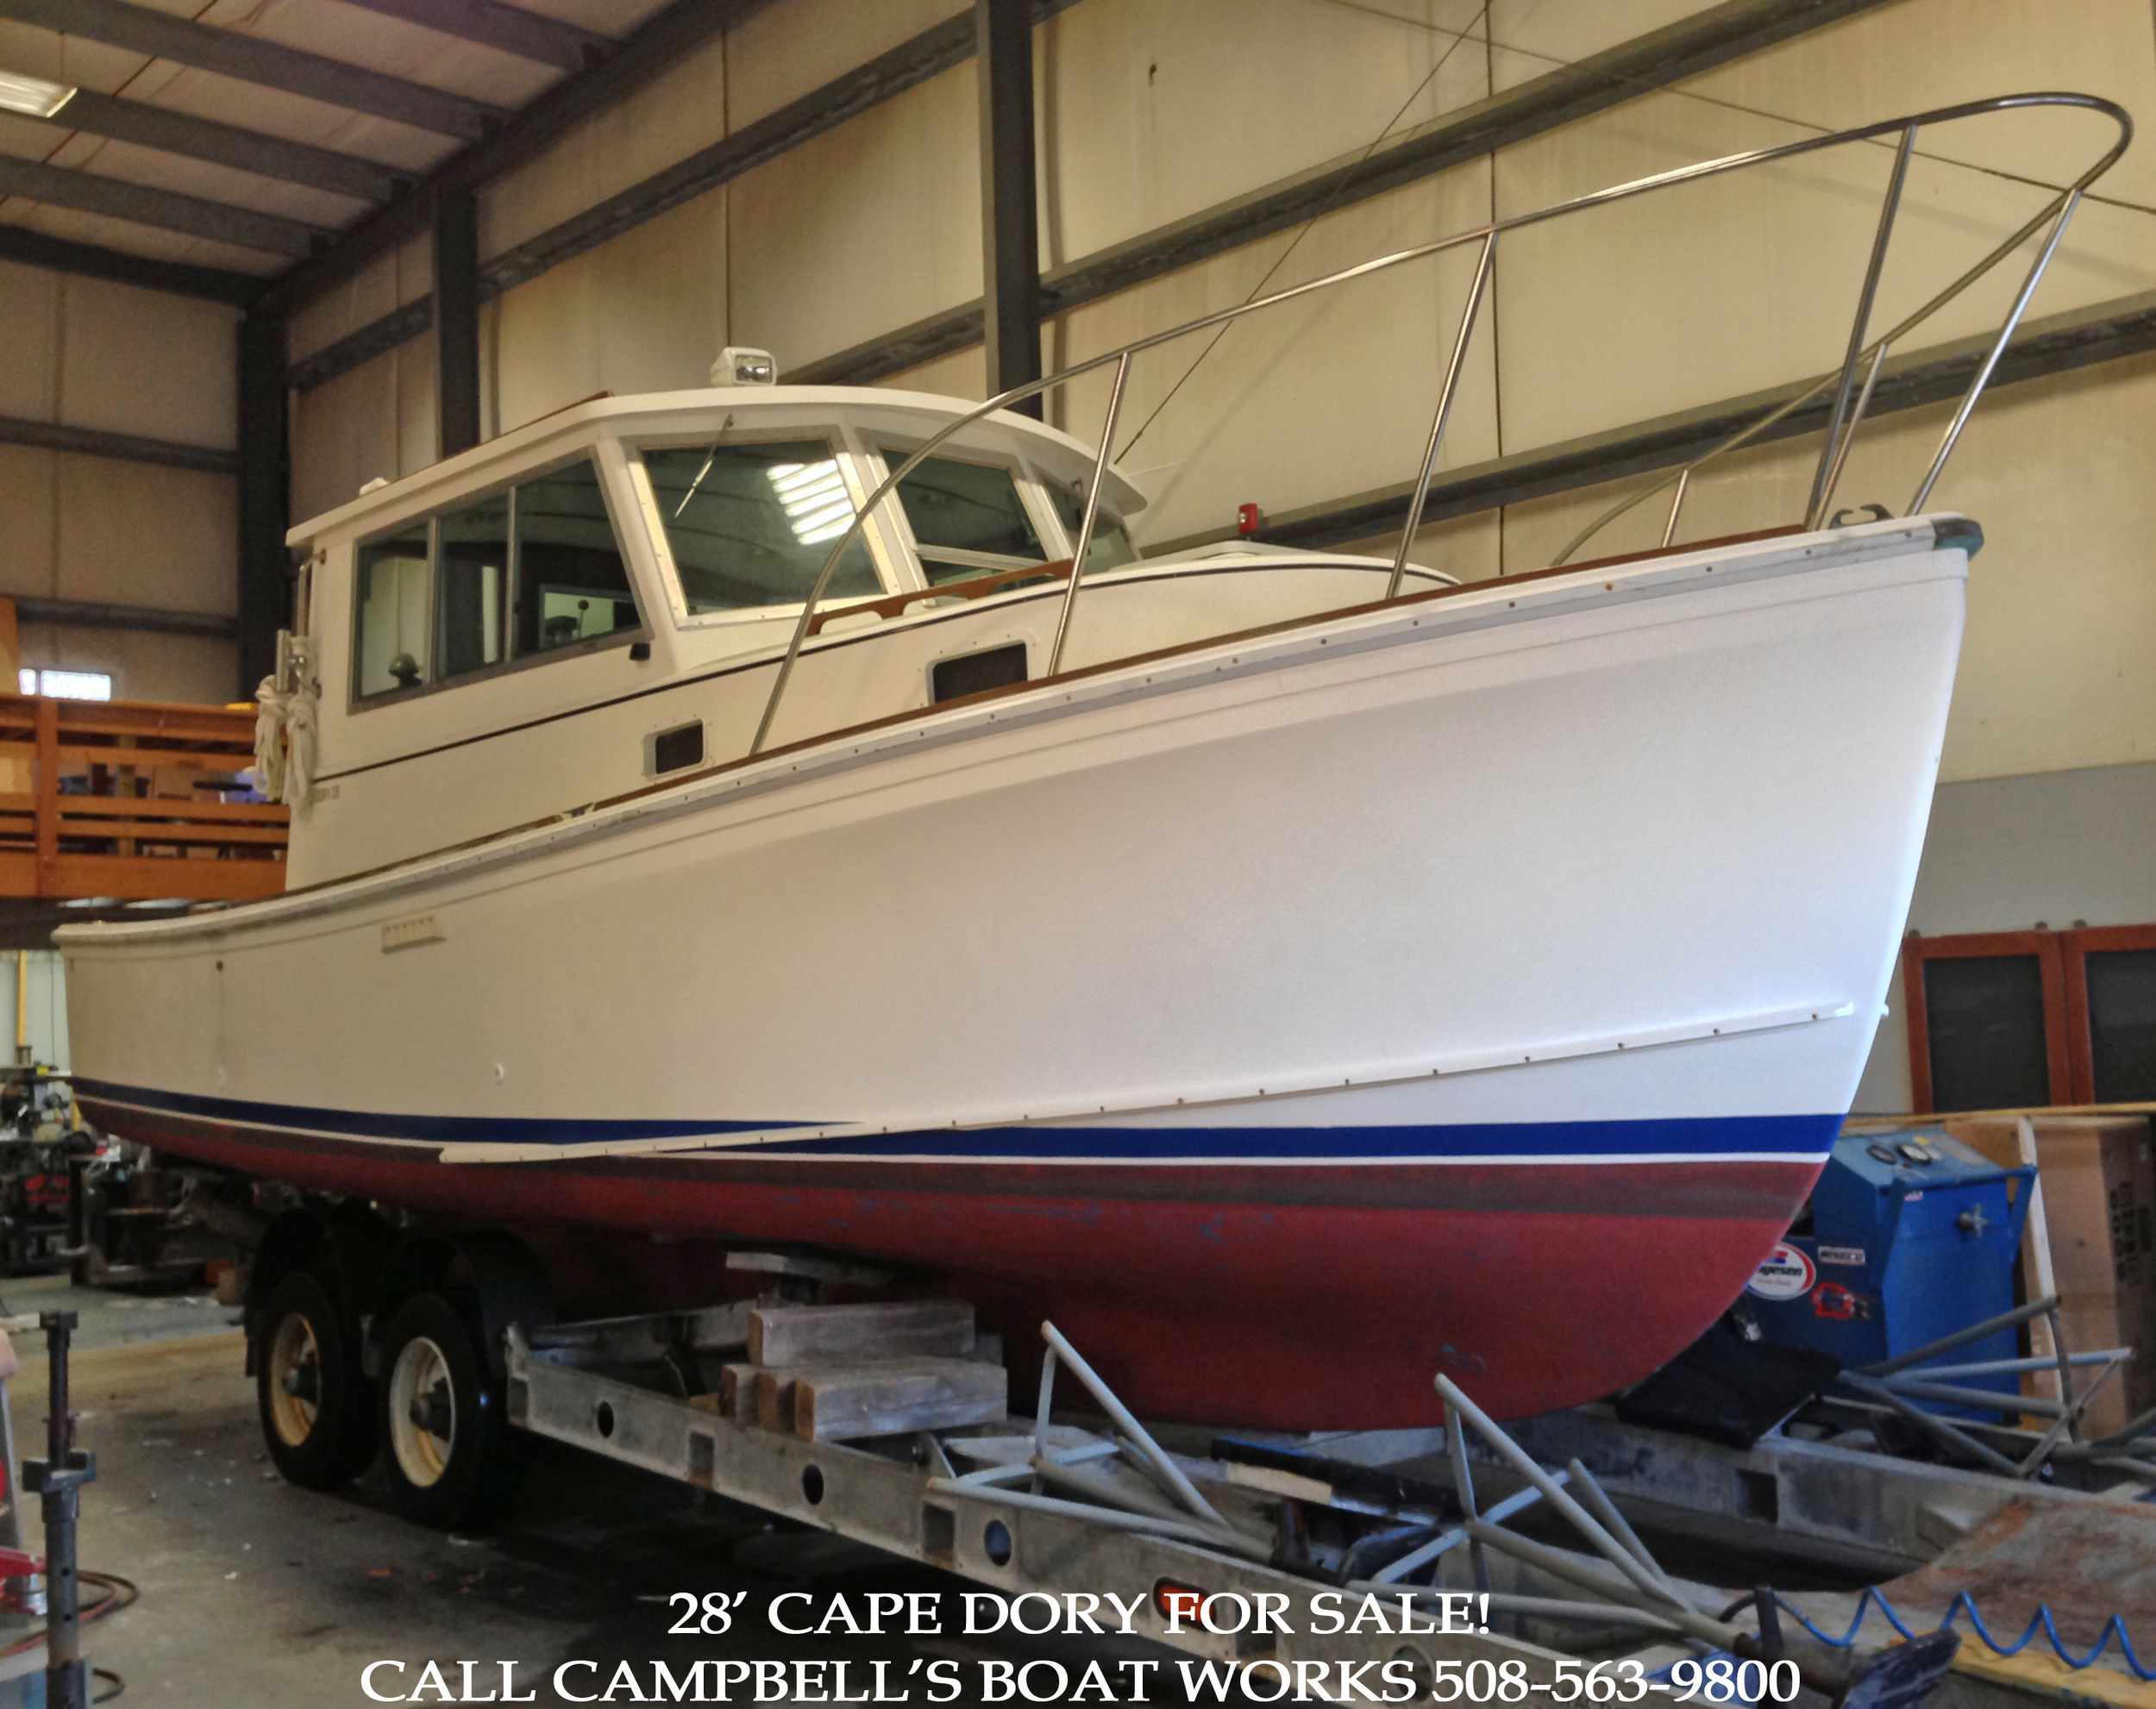 28' Cape Dory Trawler Powerboat For Sale